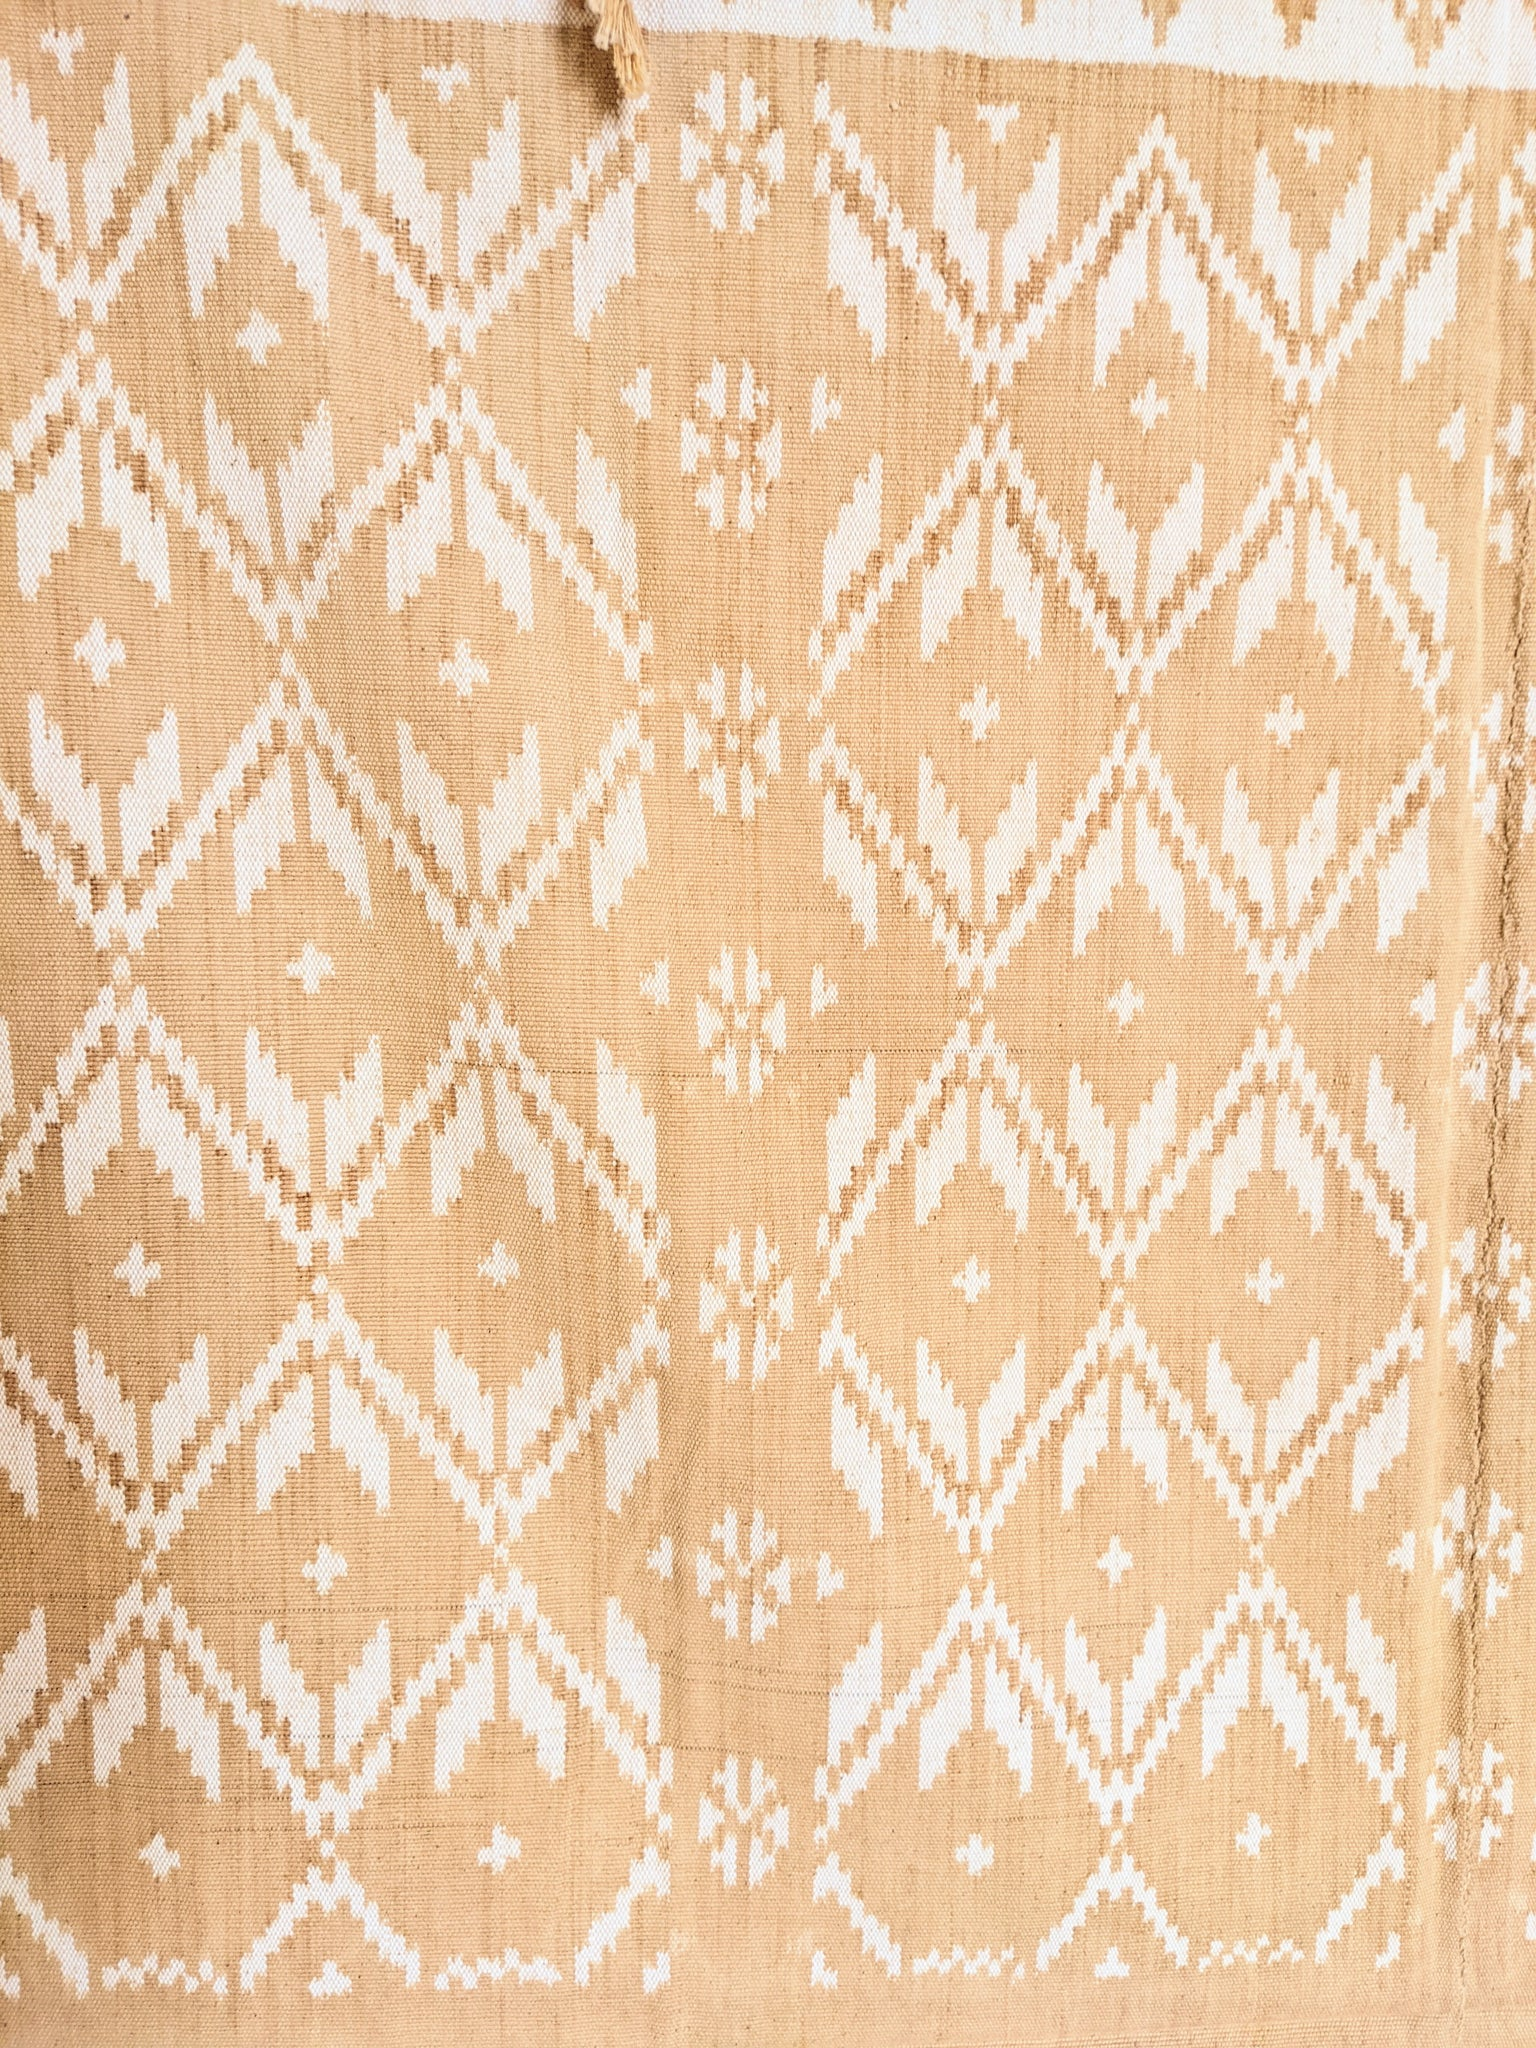 Ikat from Rote Ndao, soft Coral